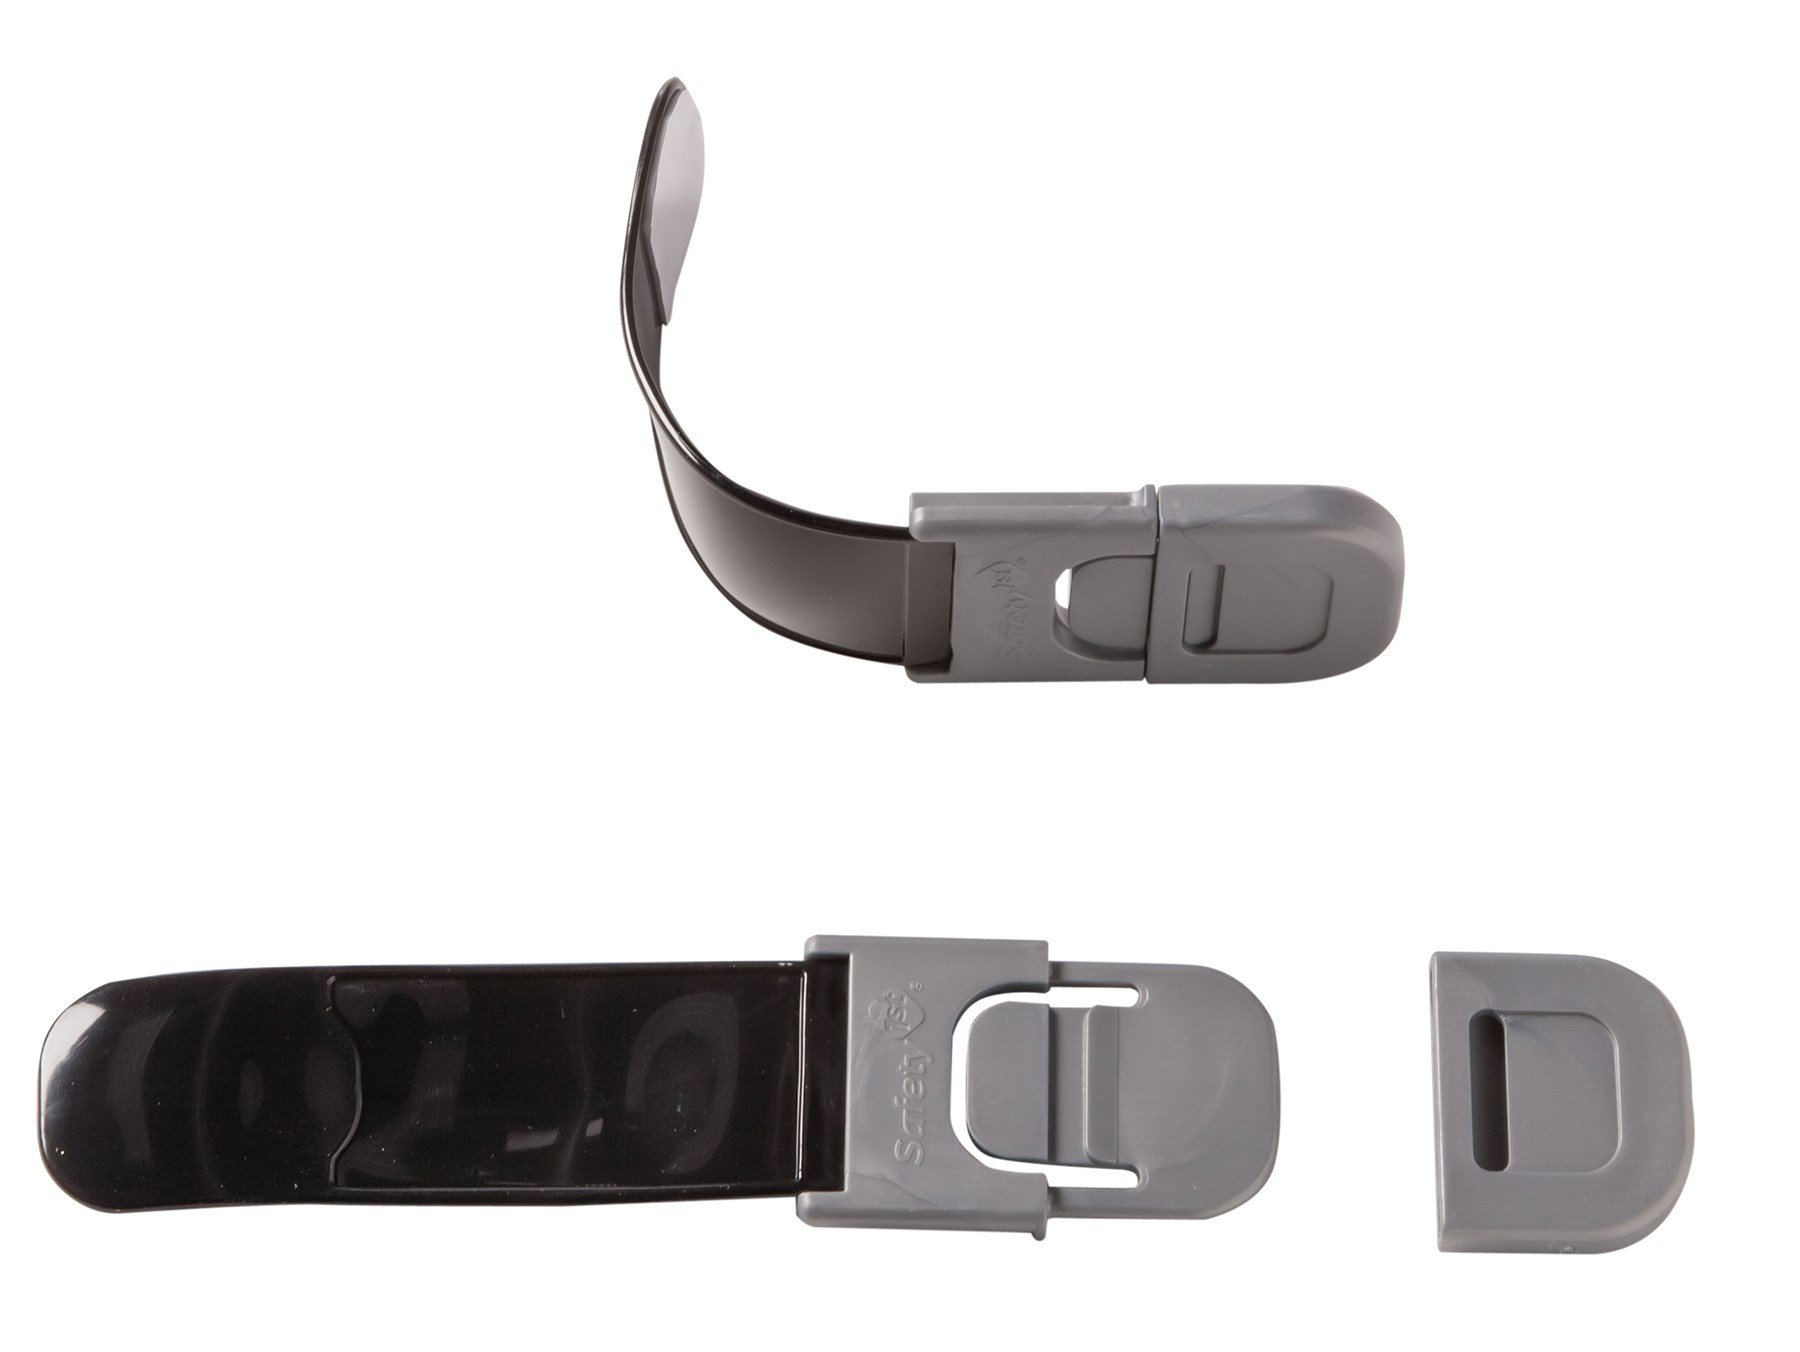 Safety 1st HS148 Black Multi-Purpose Appliance Lock 2 Count